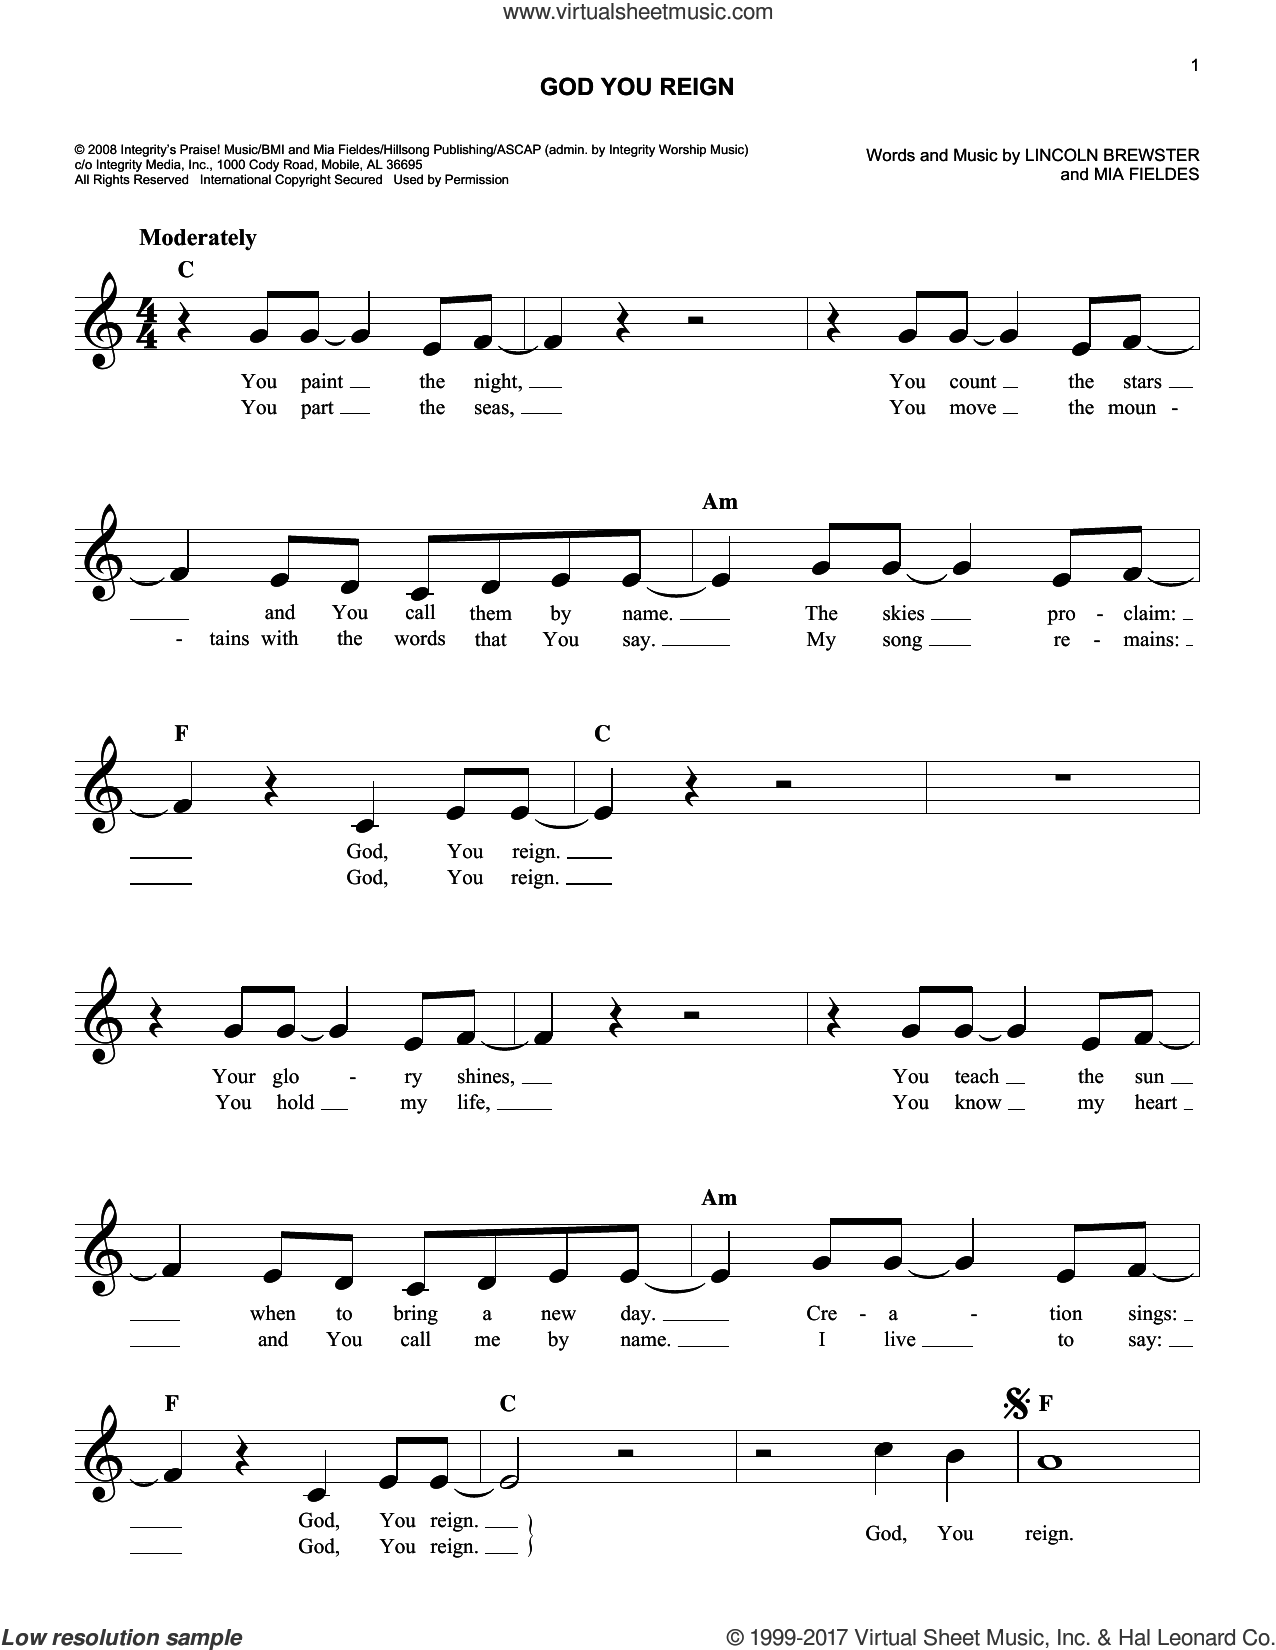 God You Reign sheet music for voice and other instruments (fake book) by Lincoln Brewster and Mia Fieldes, intermediate skill level